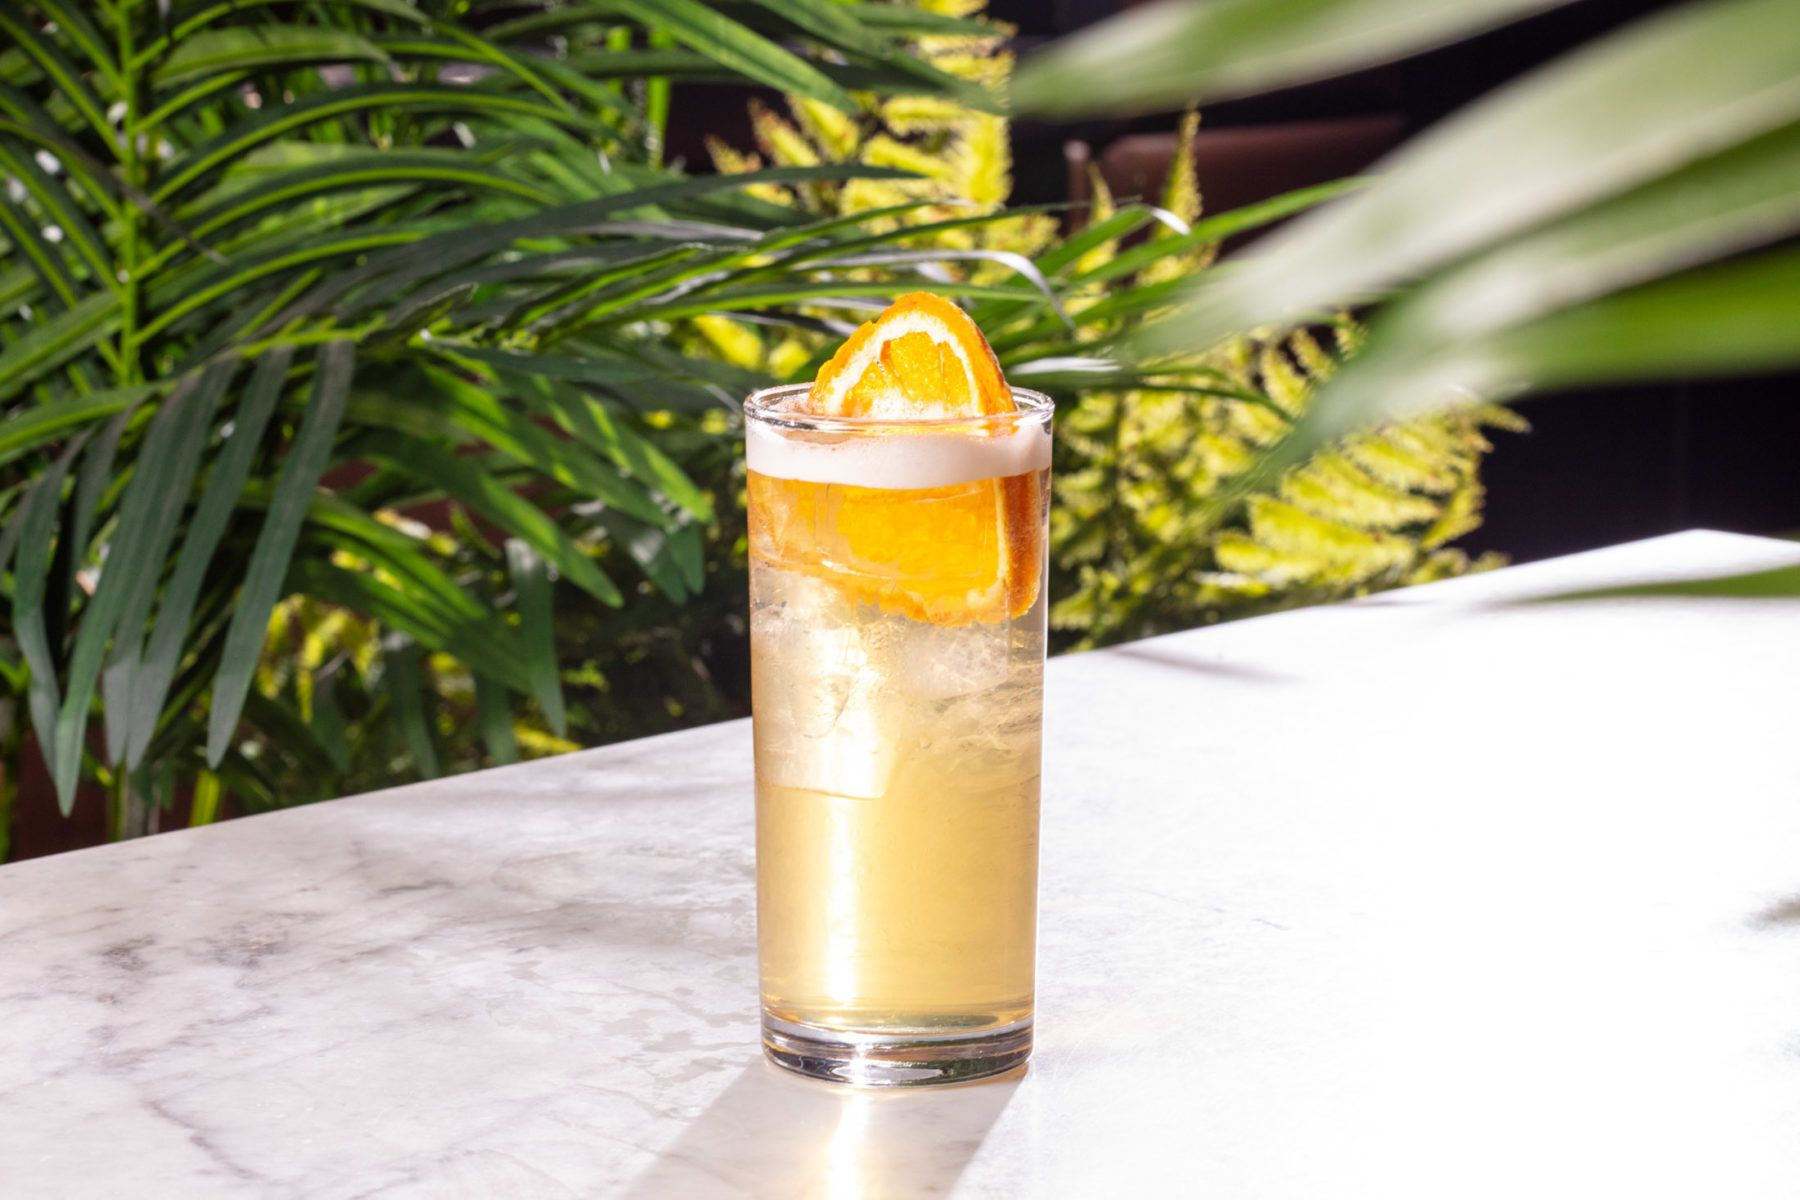 Organge cocktail with palm tree background